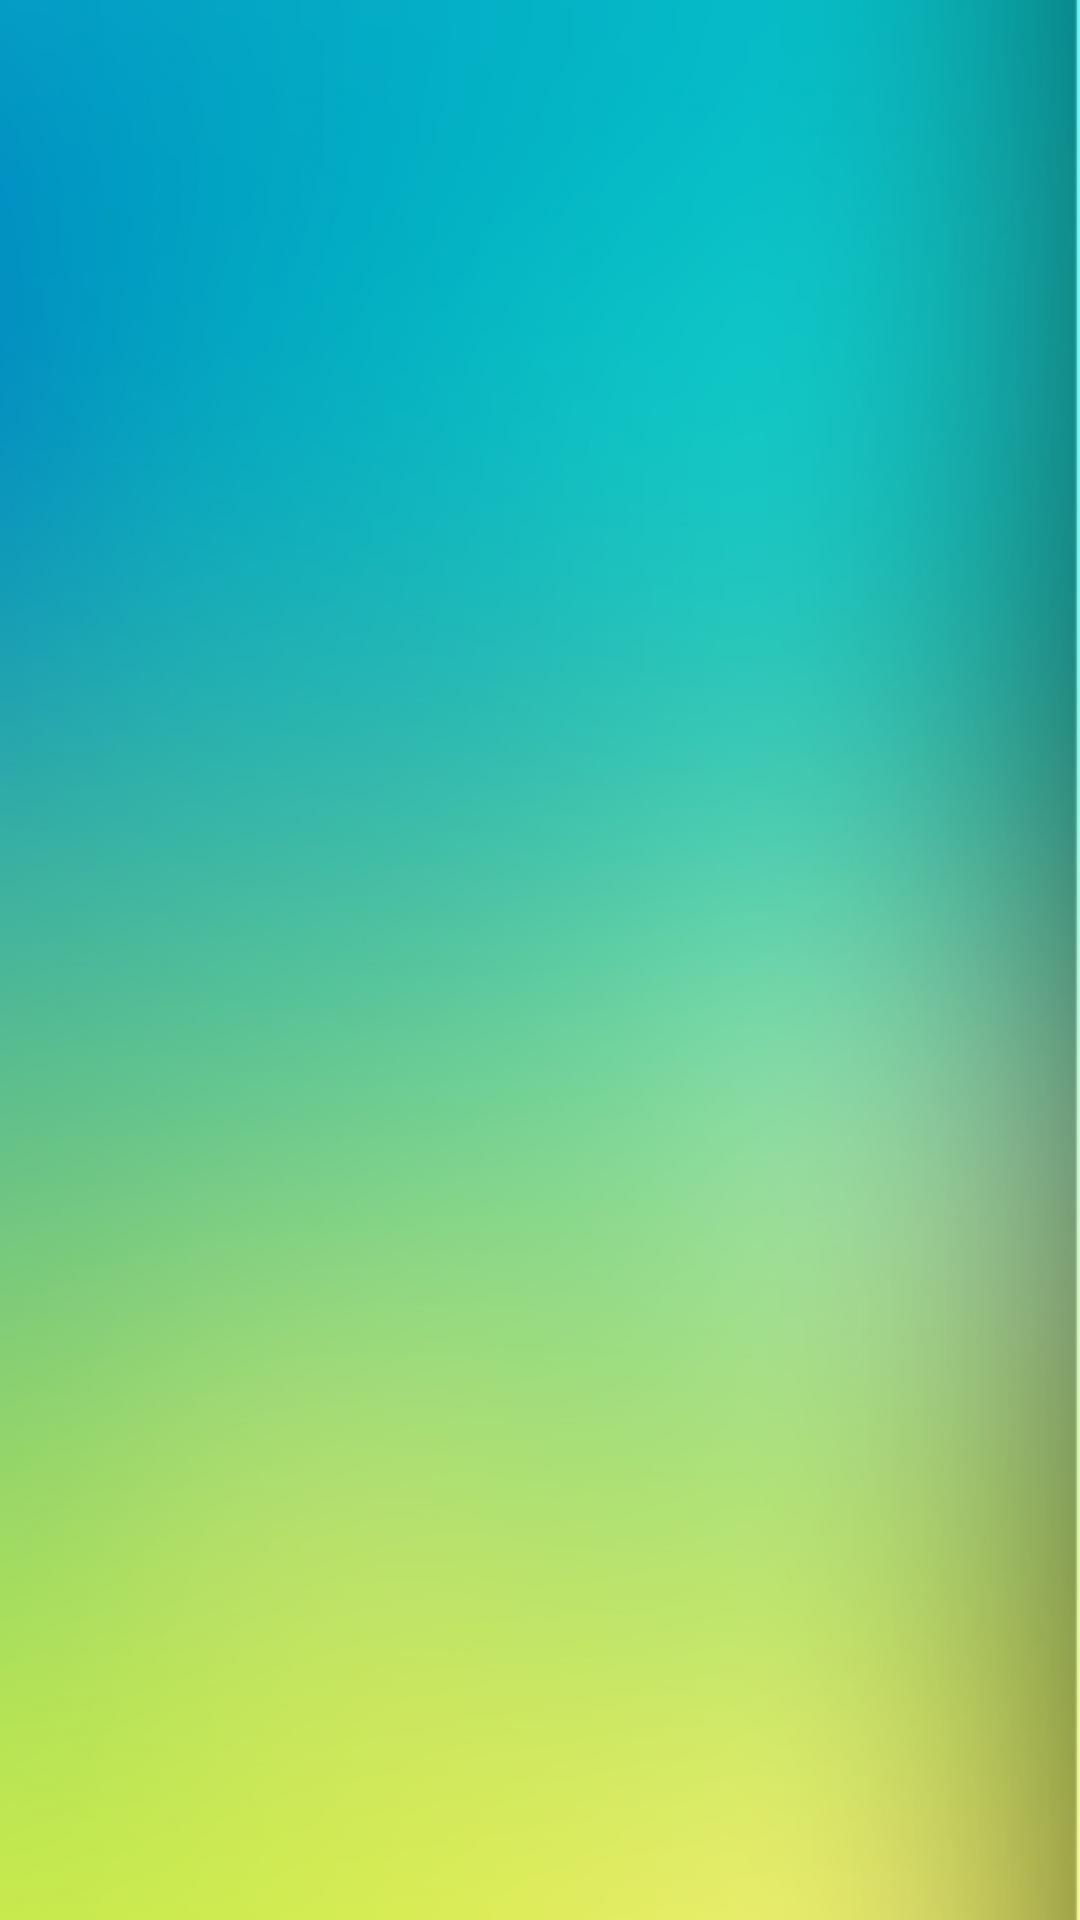 The Iphone Retina Wallpaper I Like Solid Color Backgrounds Hex Colors Background Images